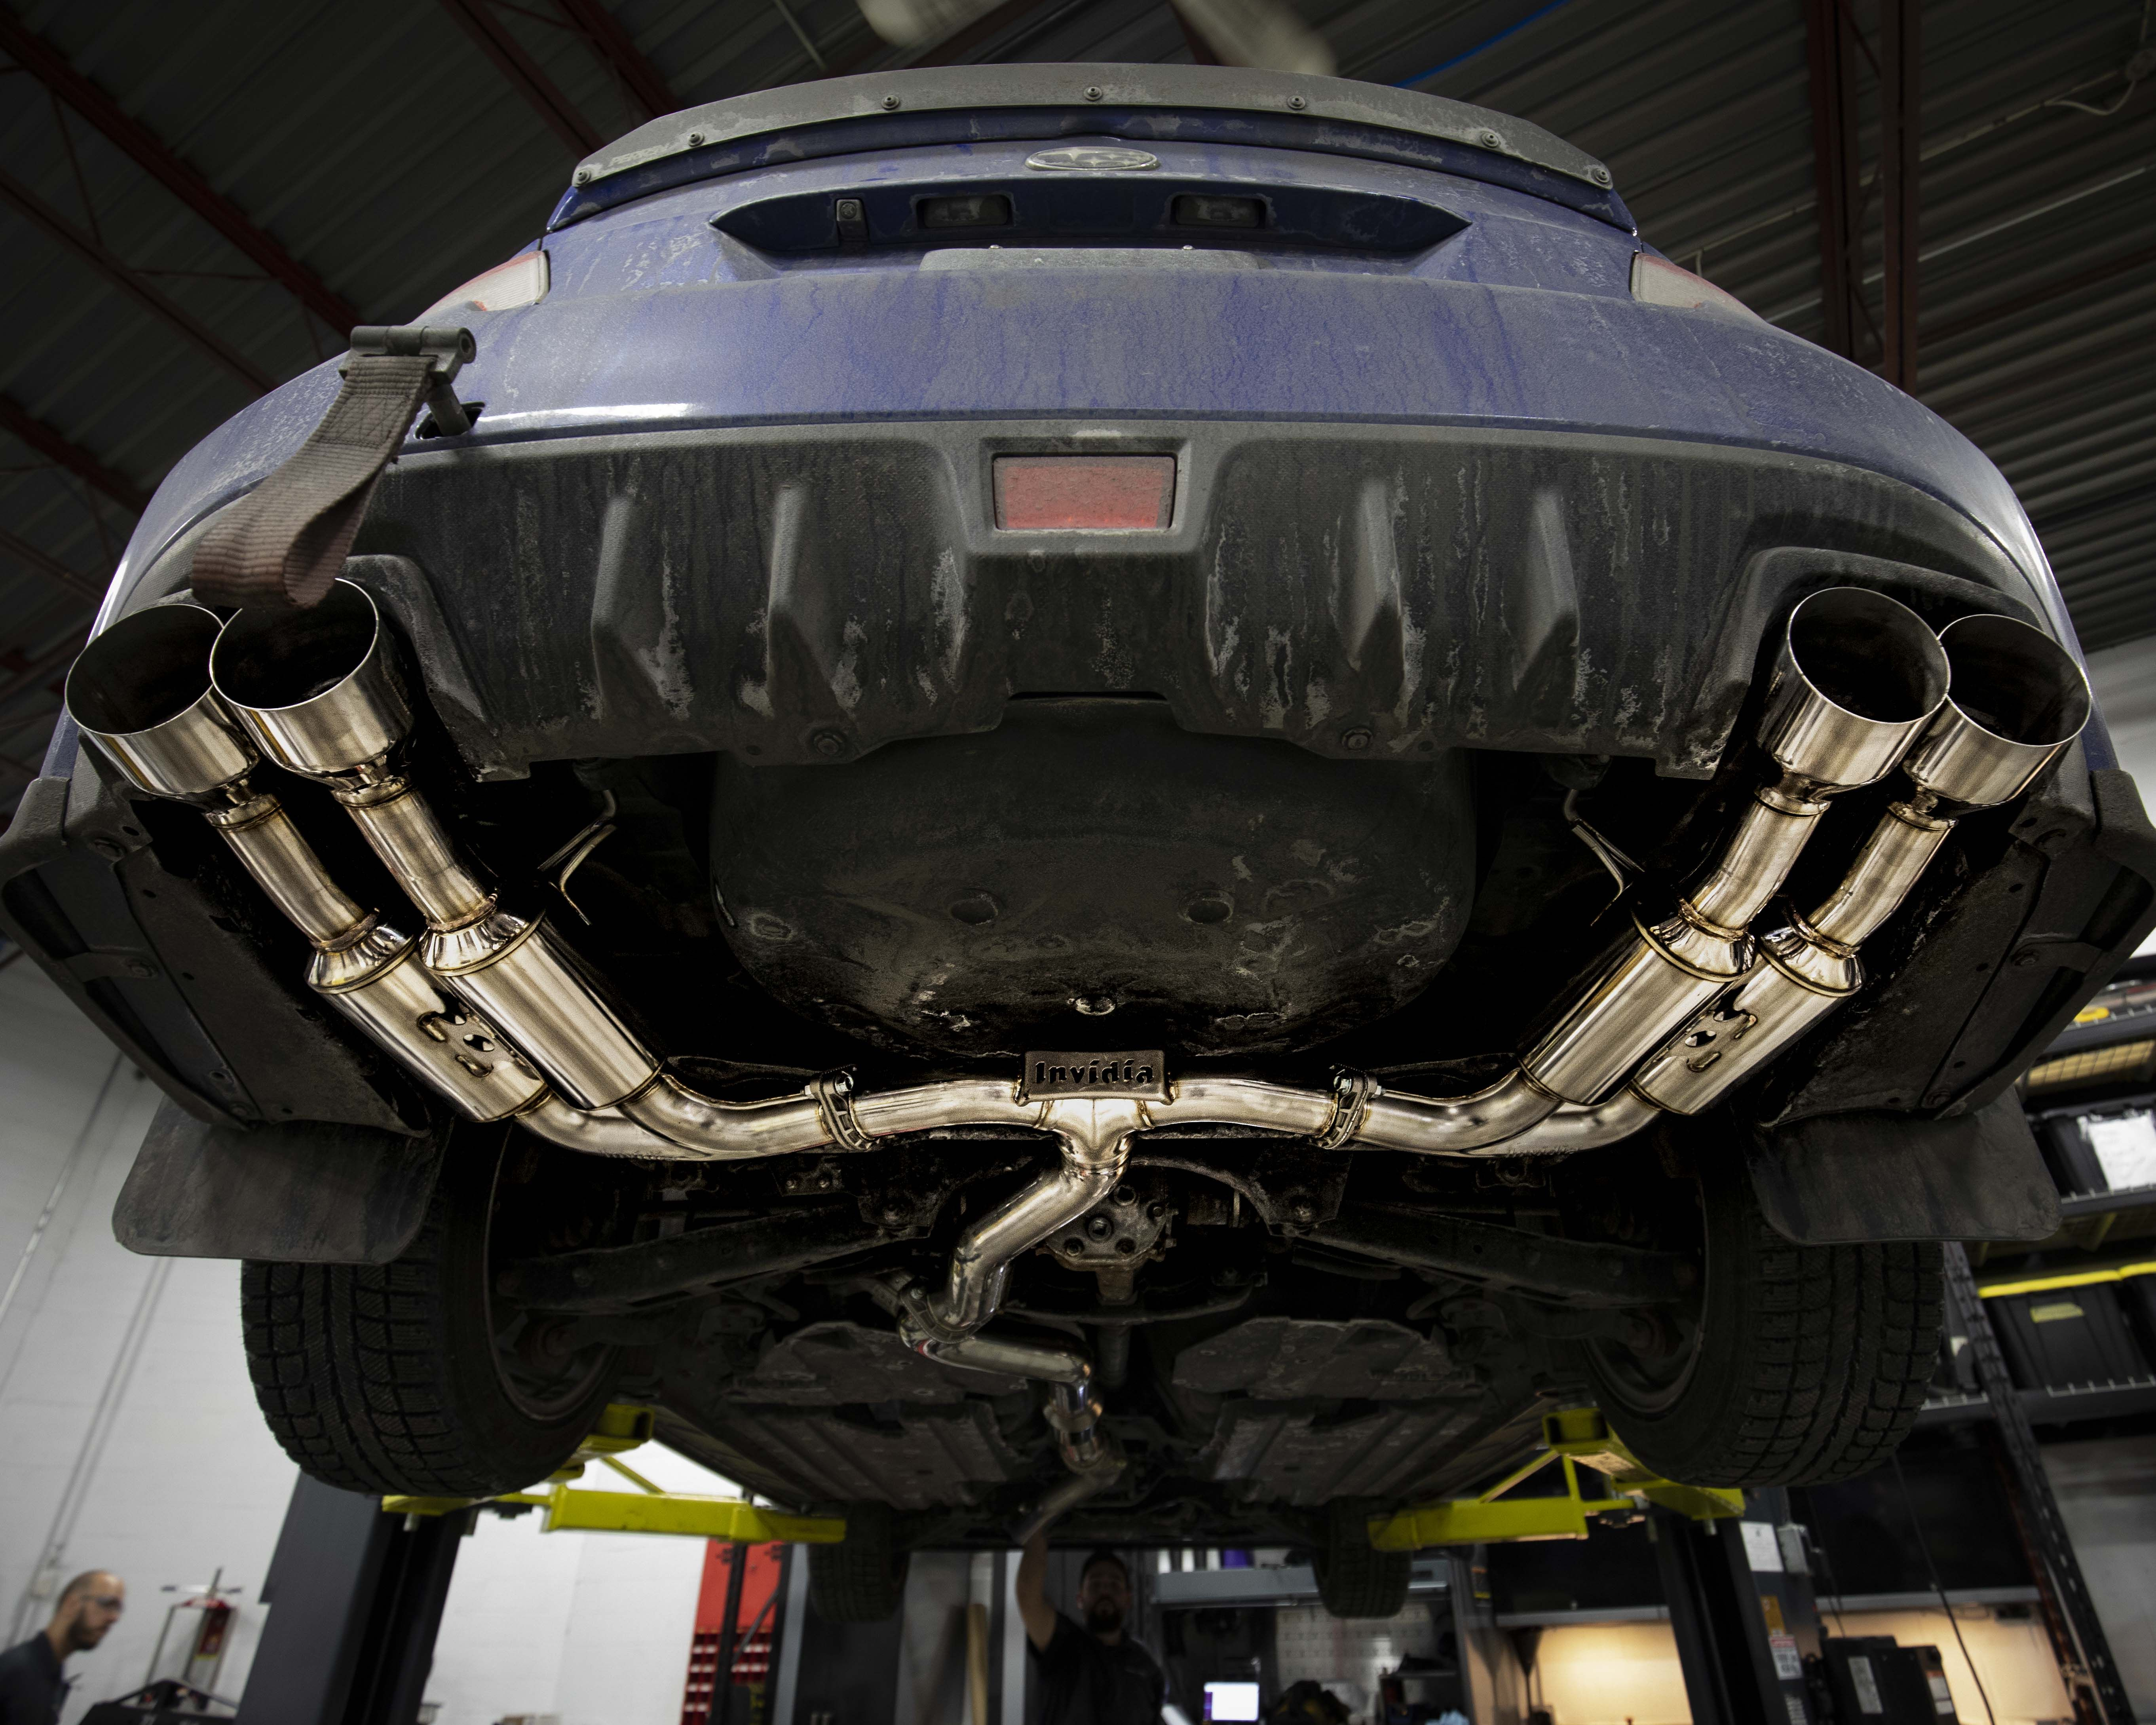 What exhaust do you have on your Subaru? The stainless tip